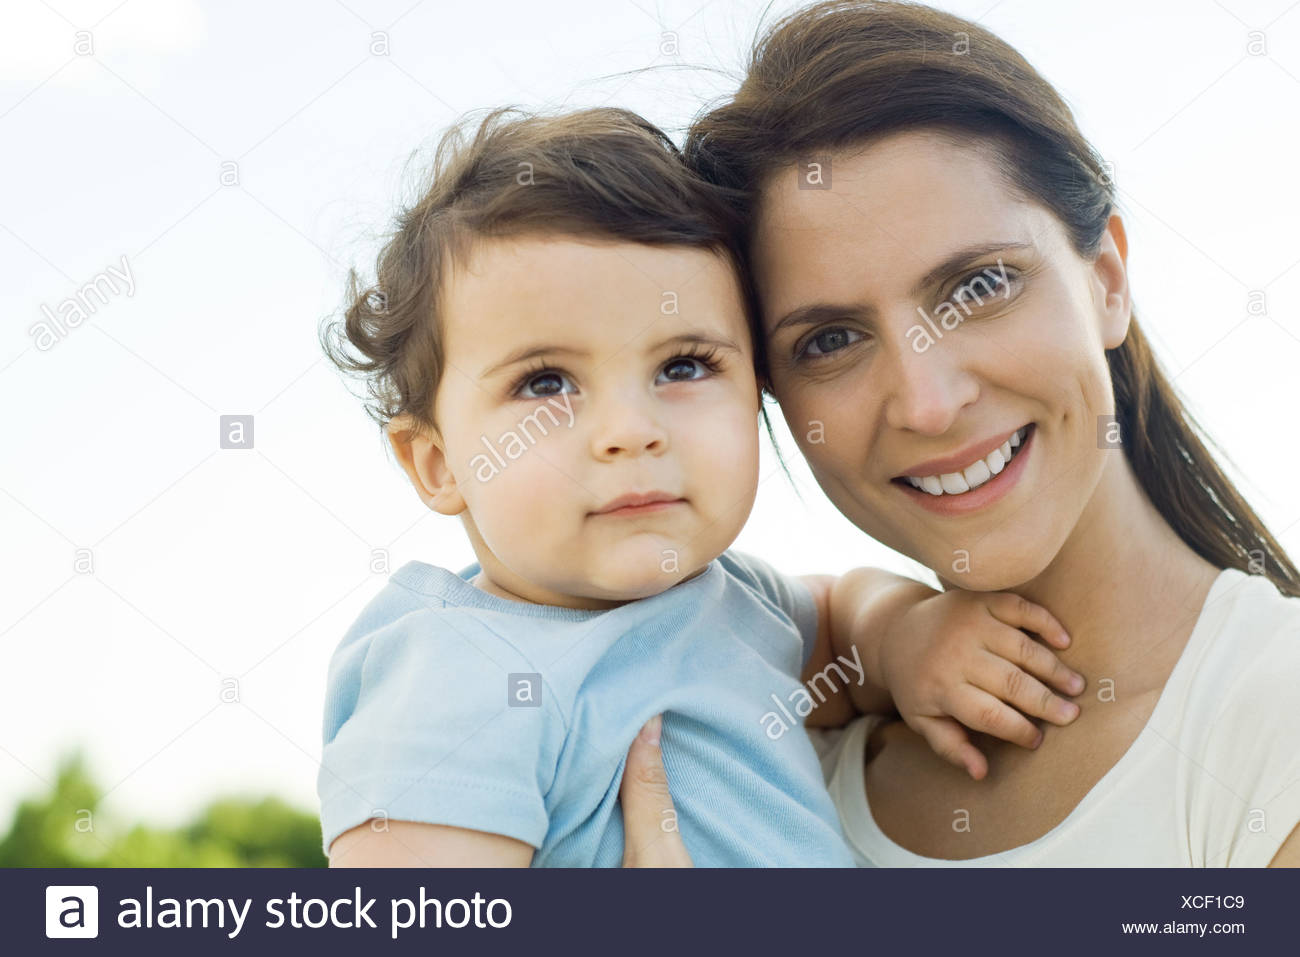 Mother holding baby, smiling at camera, portrait - Stock Image